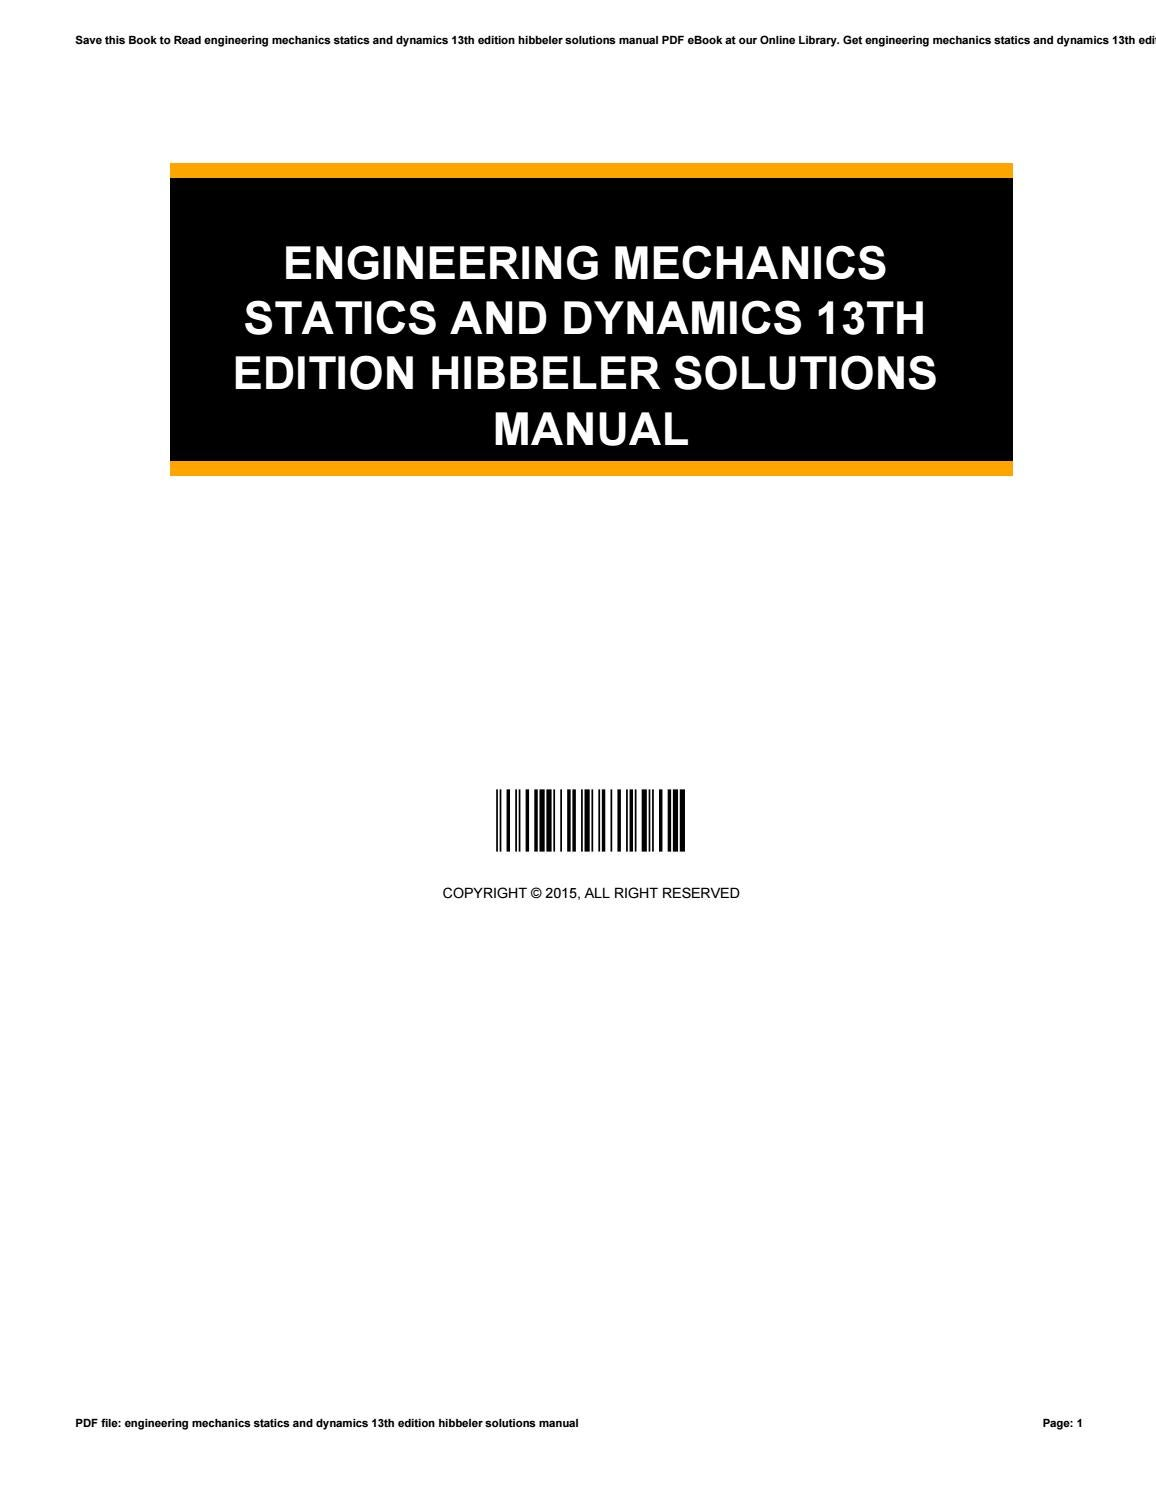 Download Hibbeler 12th Edition Solution Manual.pdf